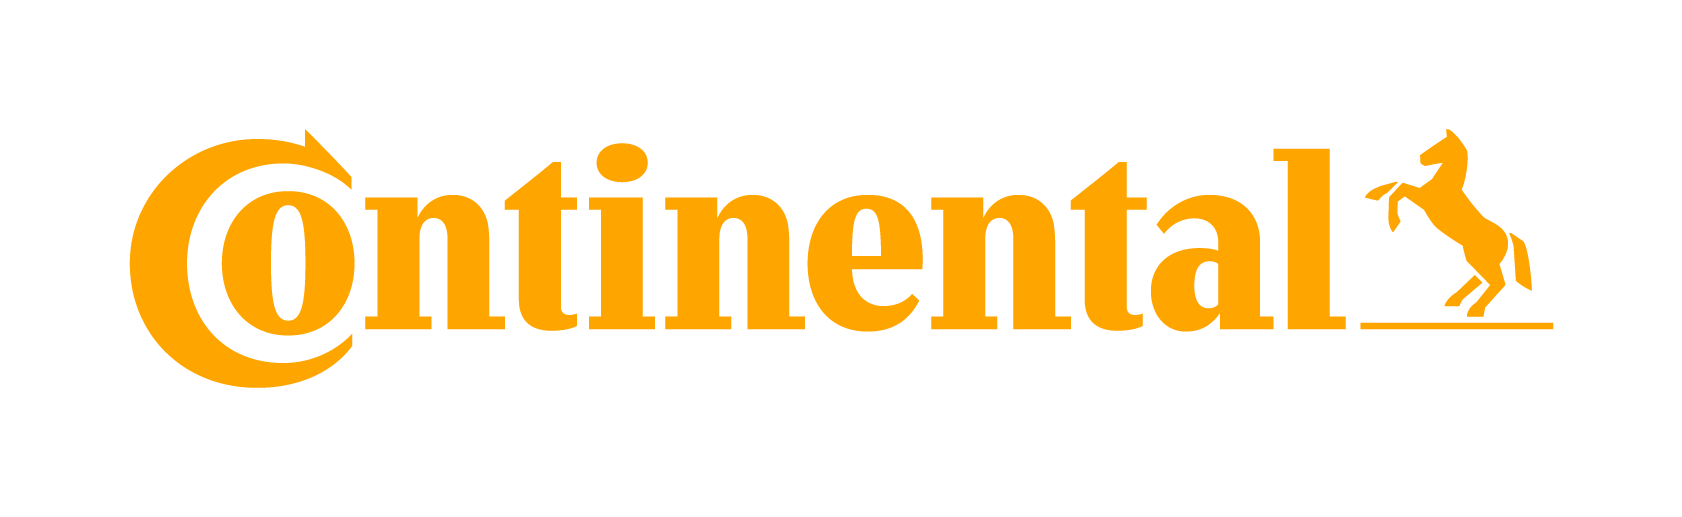 continental_logo_yellow_srgb_png-data_1391442108.jpg